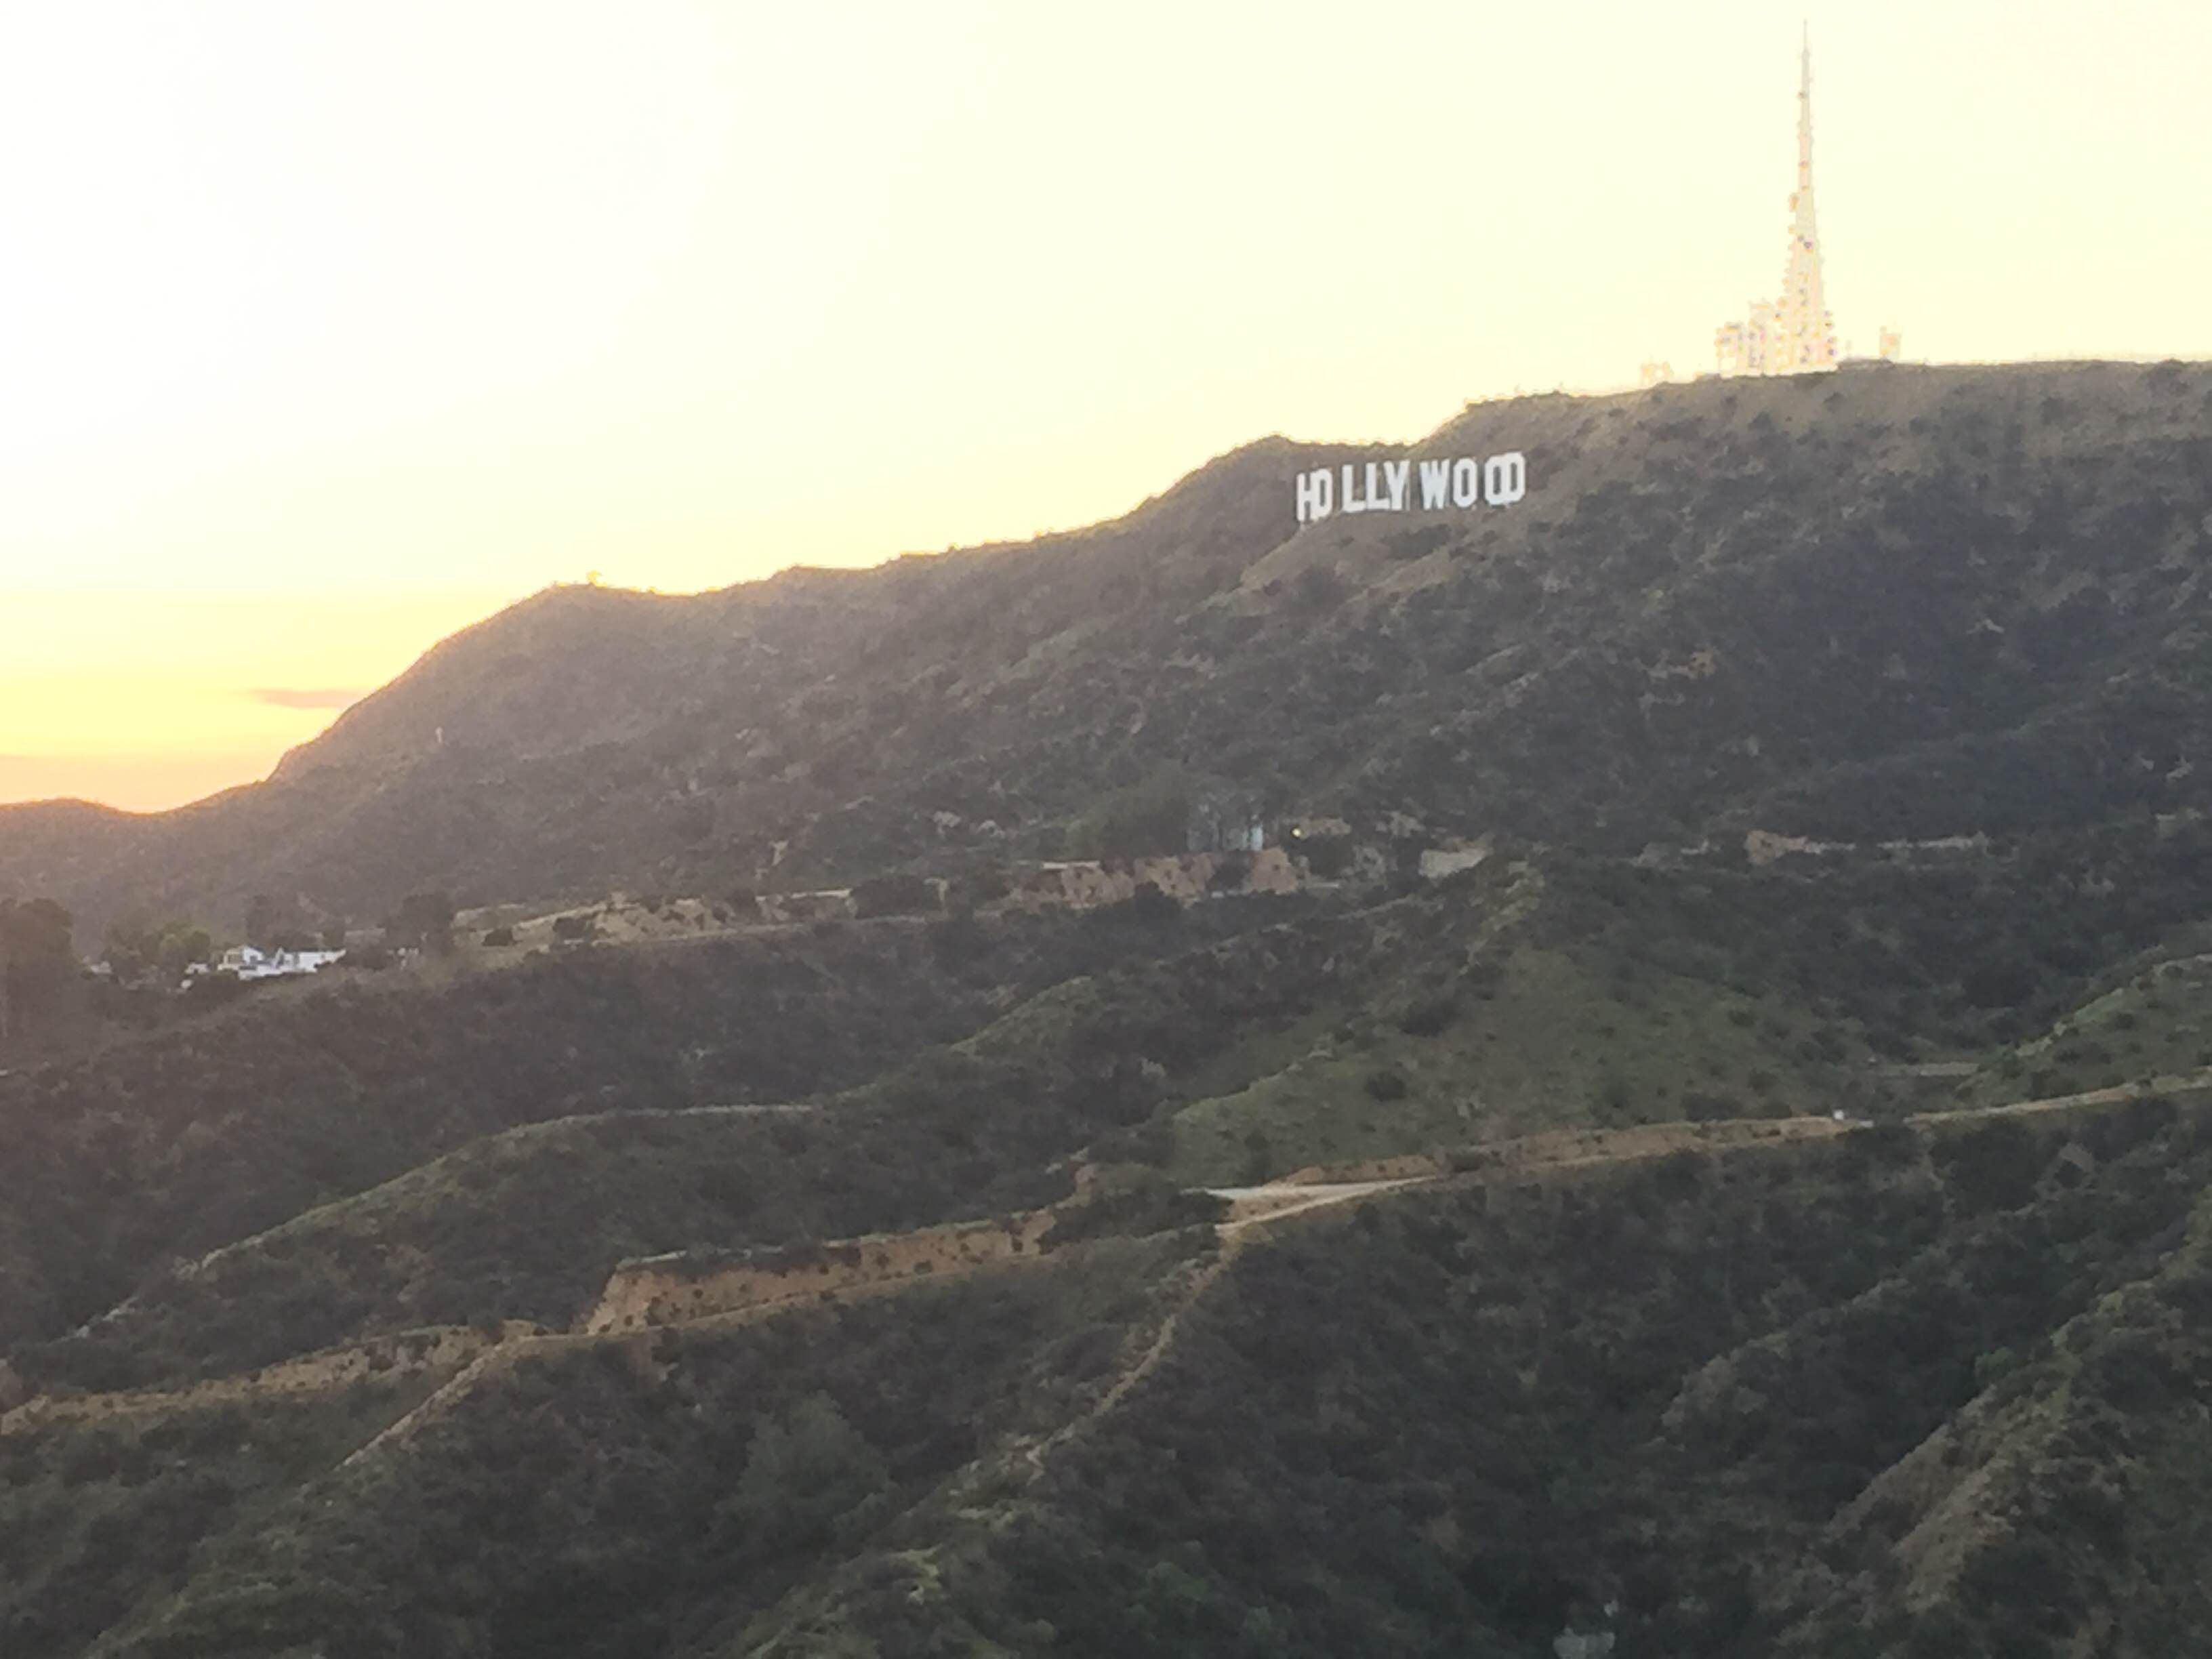 Mt hollywood trail